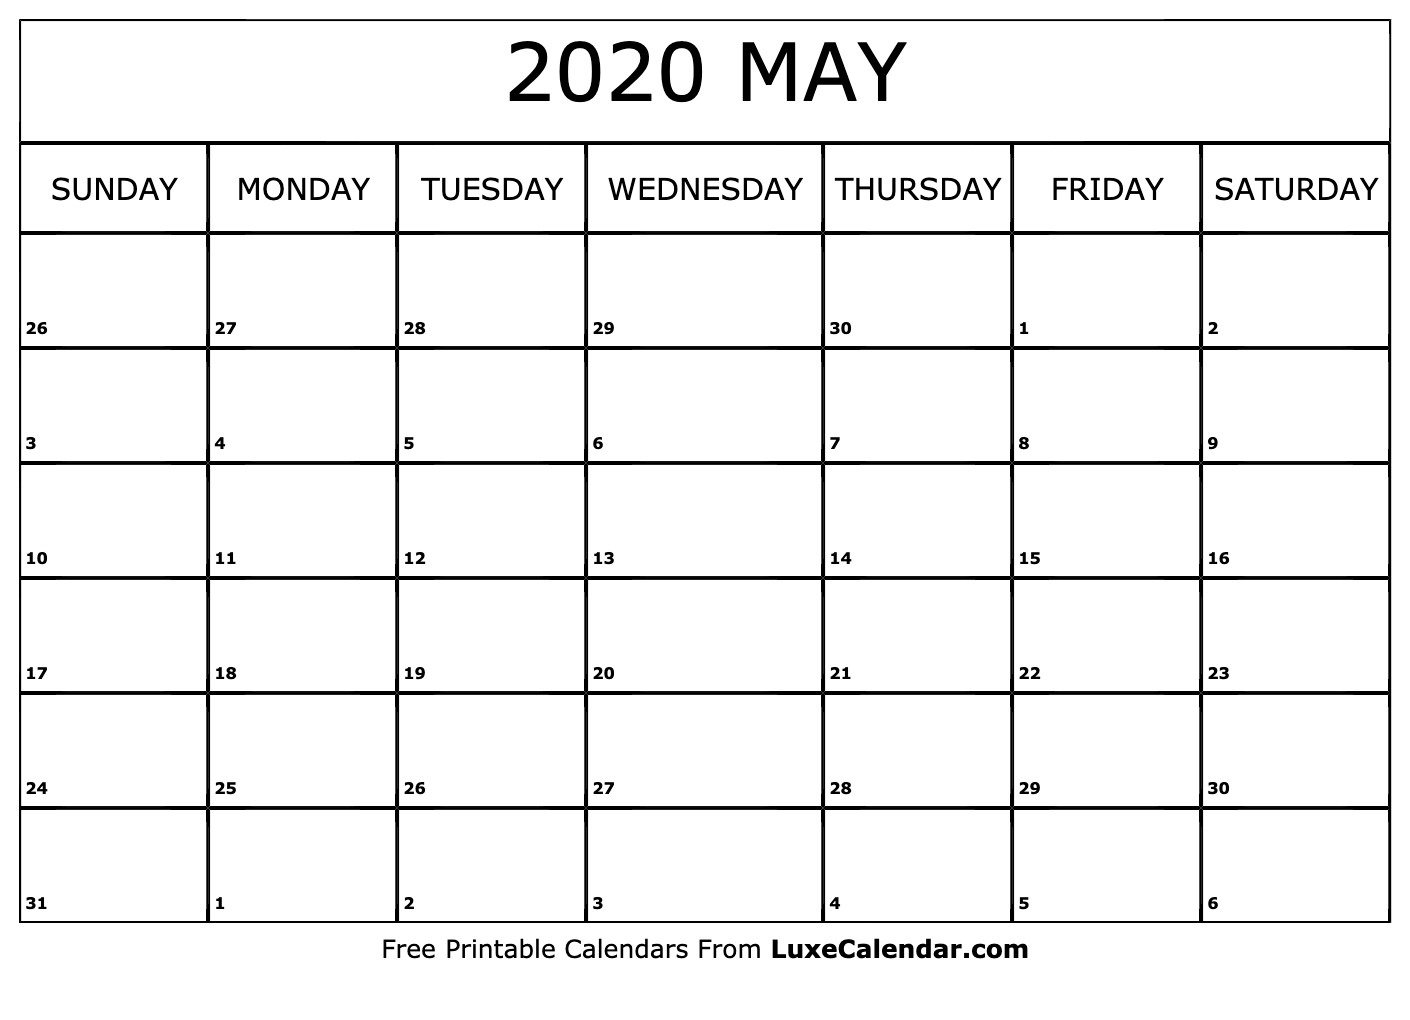 Calendar Blank 2020 May | Calendar Template Information